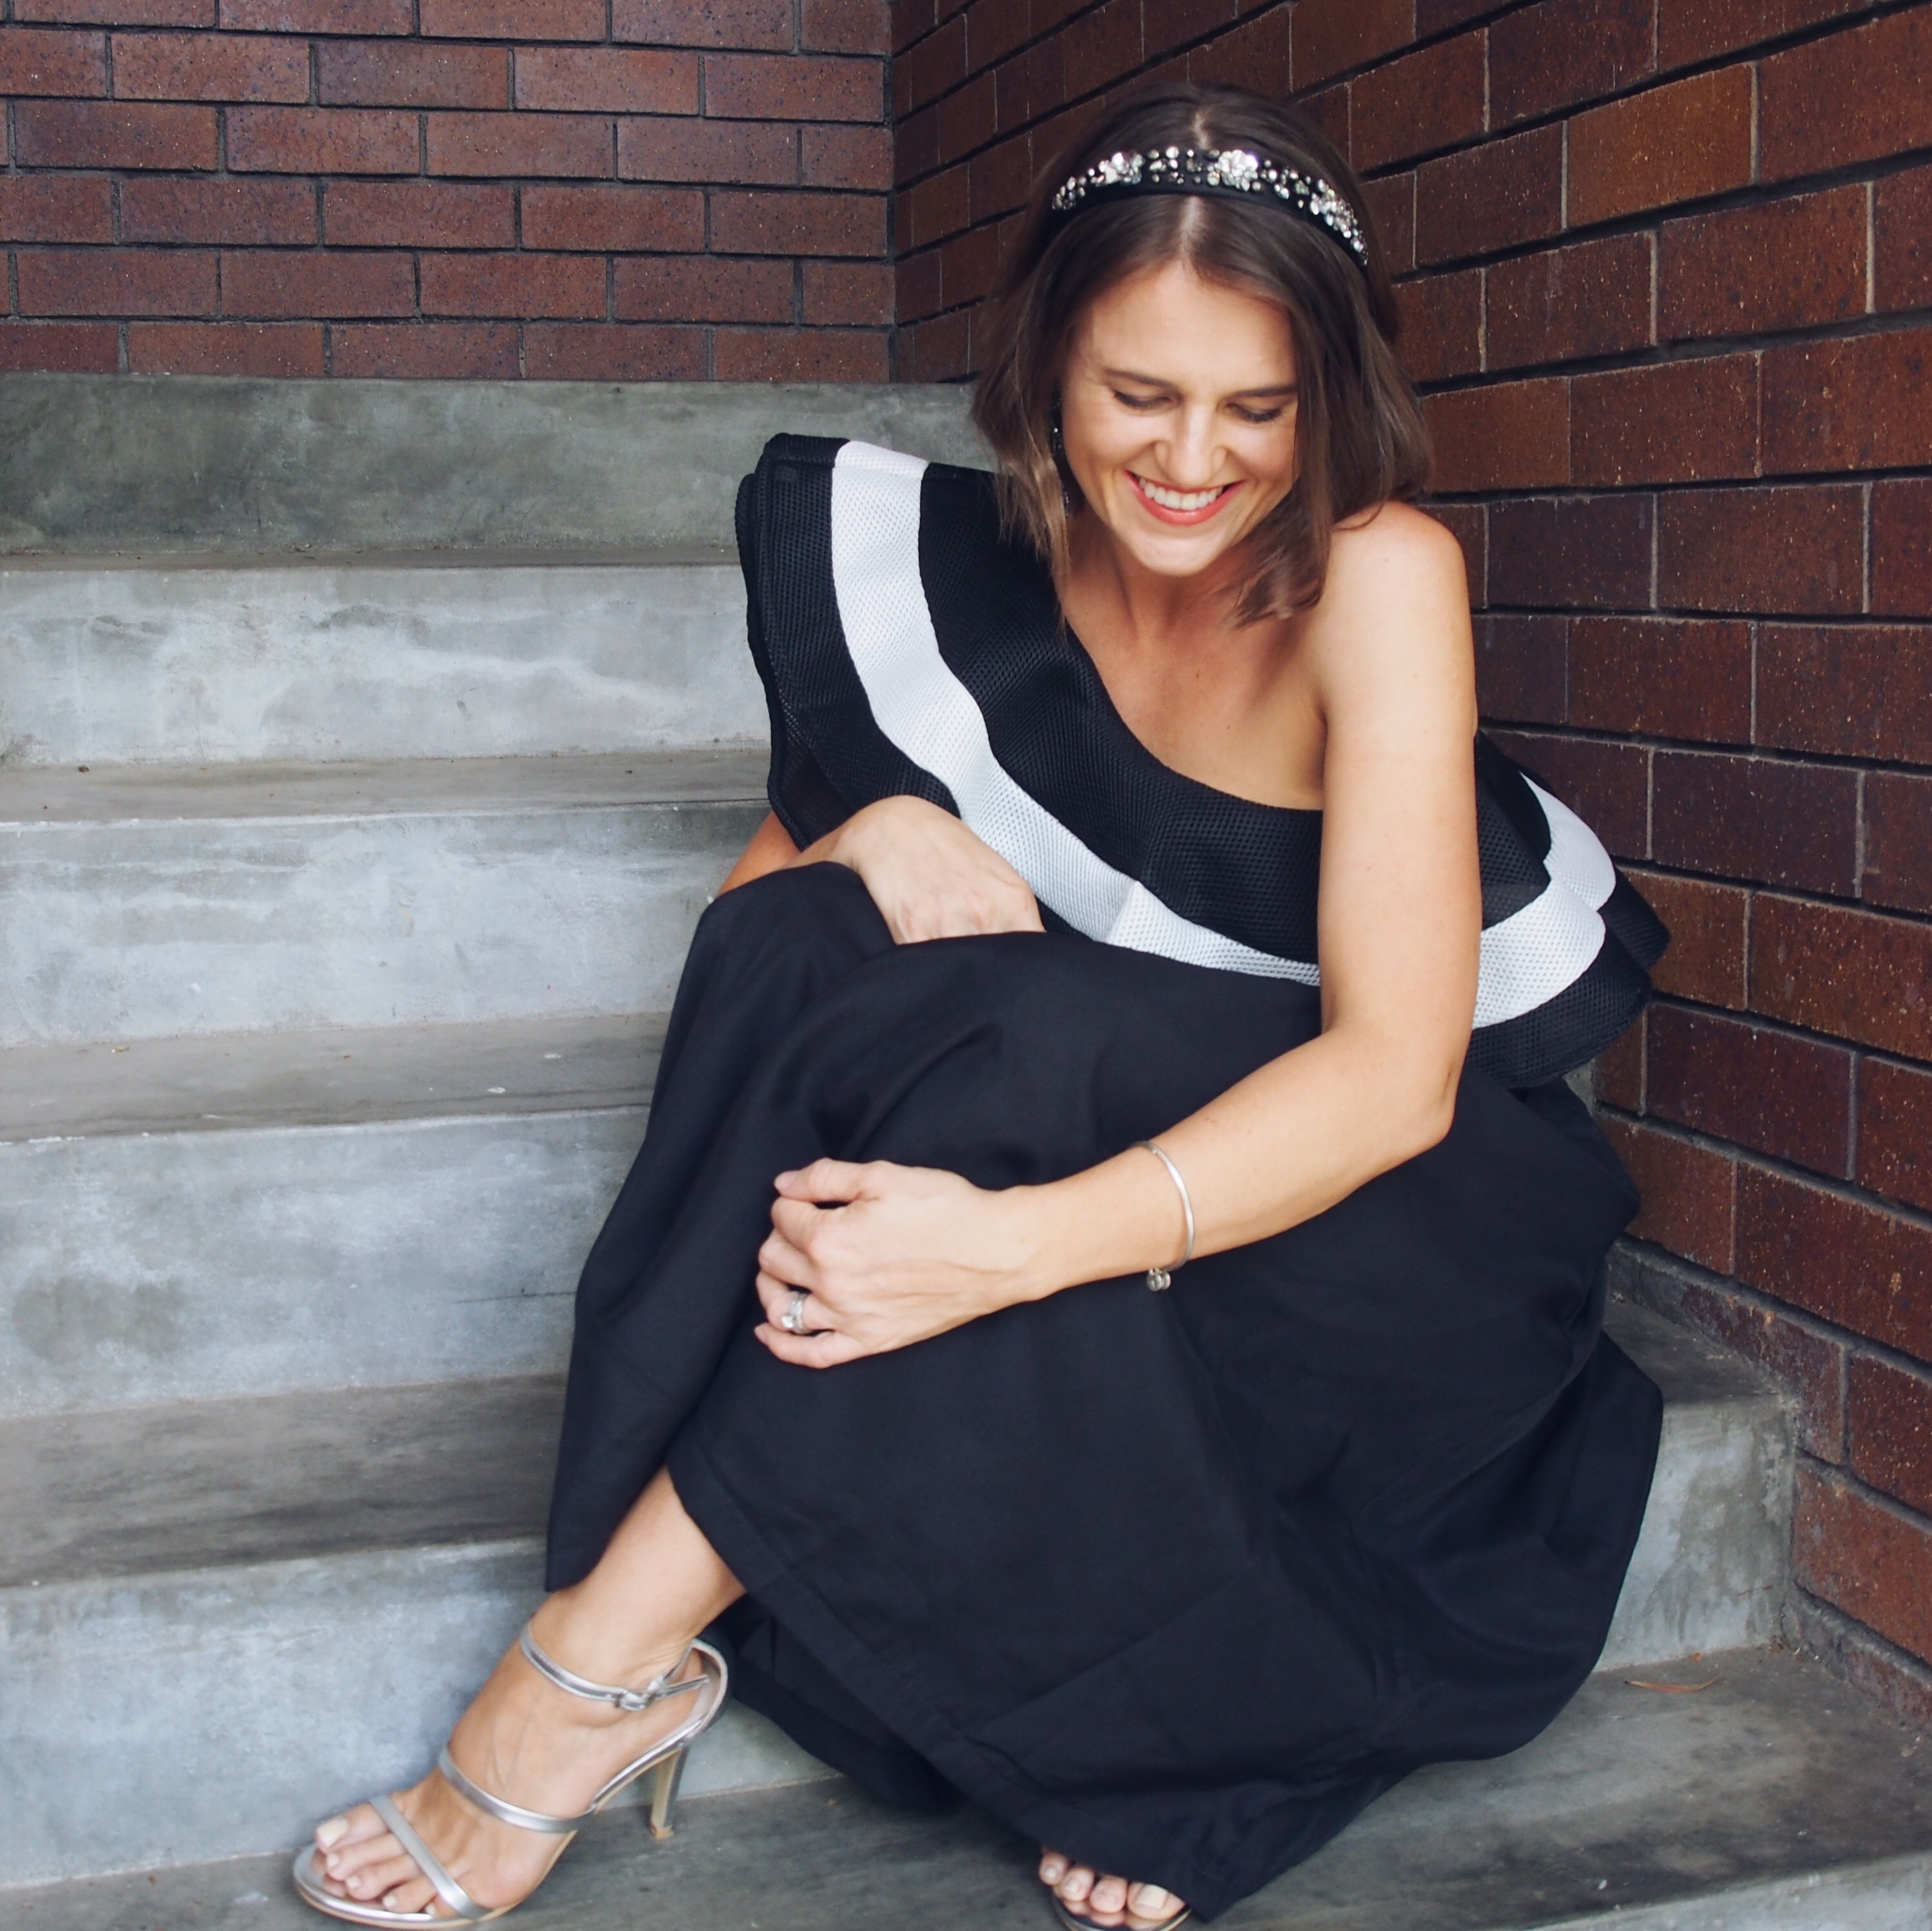 Black and white derby day outfit idea melbourne cup spring racing outfit